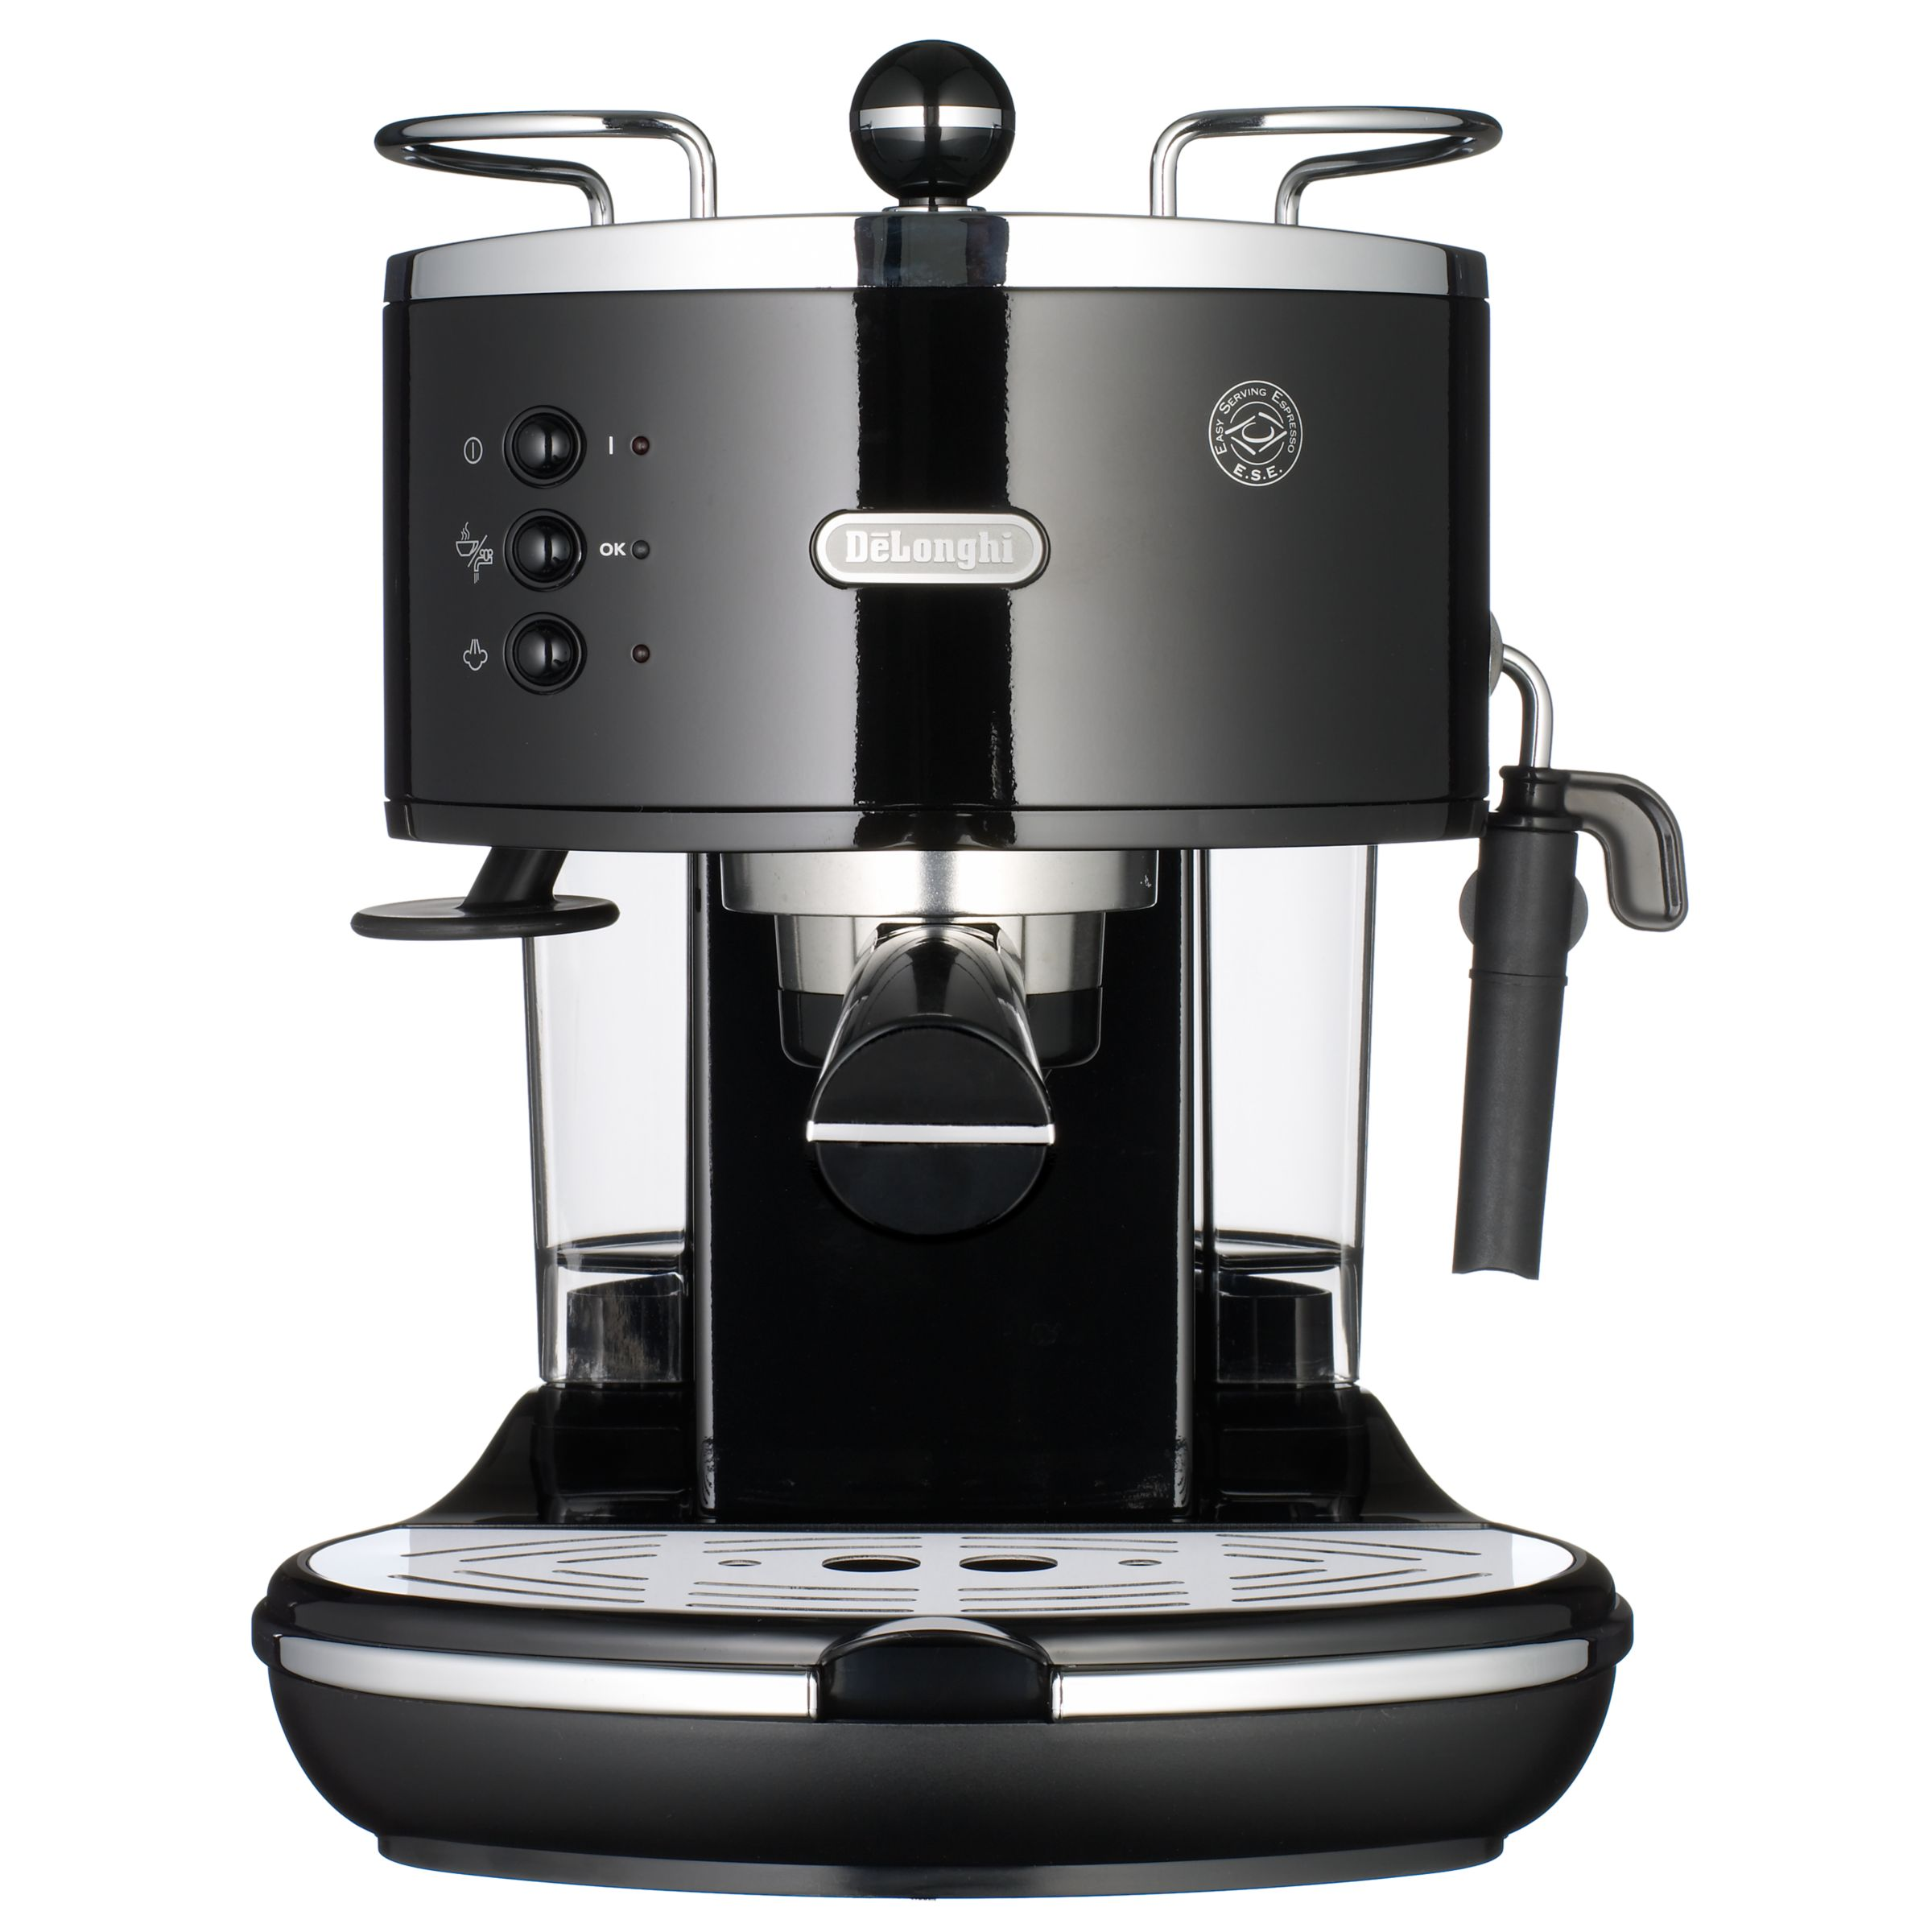 Italian Coffee Maker John Lewis : Buy De Longhi ECO310.BK Icona Espresso Coffee Machine, Black John Lewis